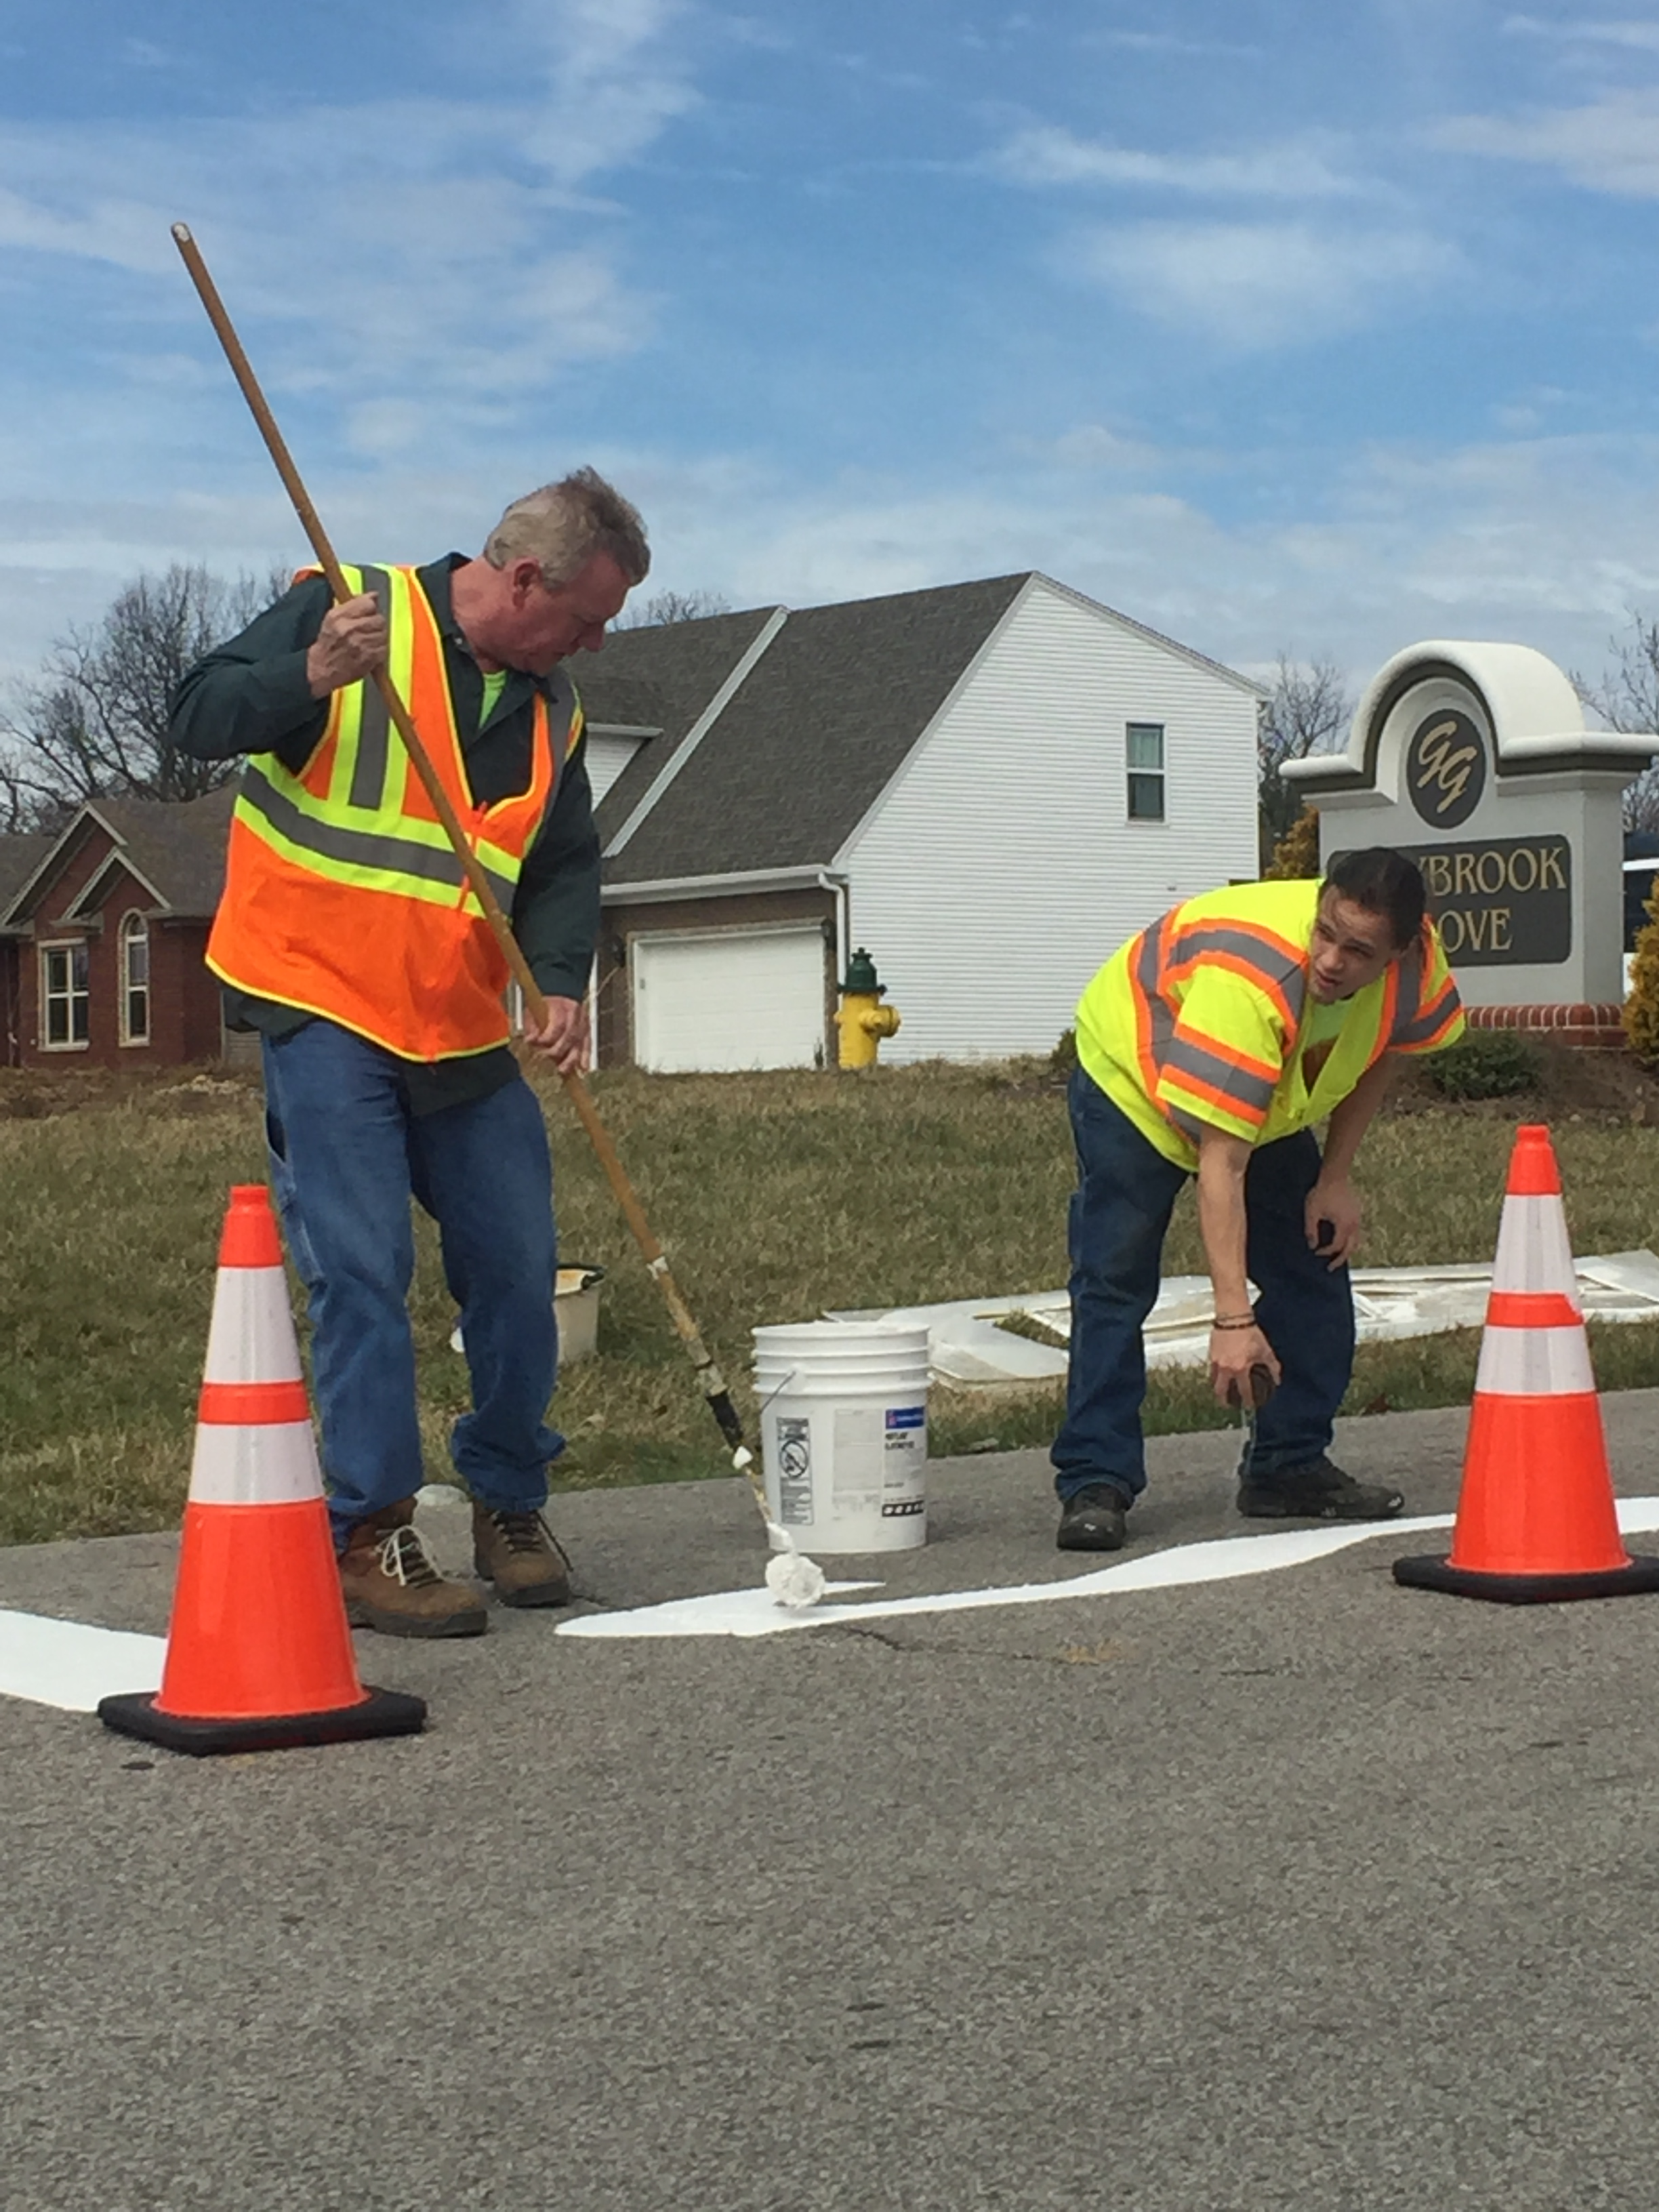 Crews work to repaint traffic signage.